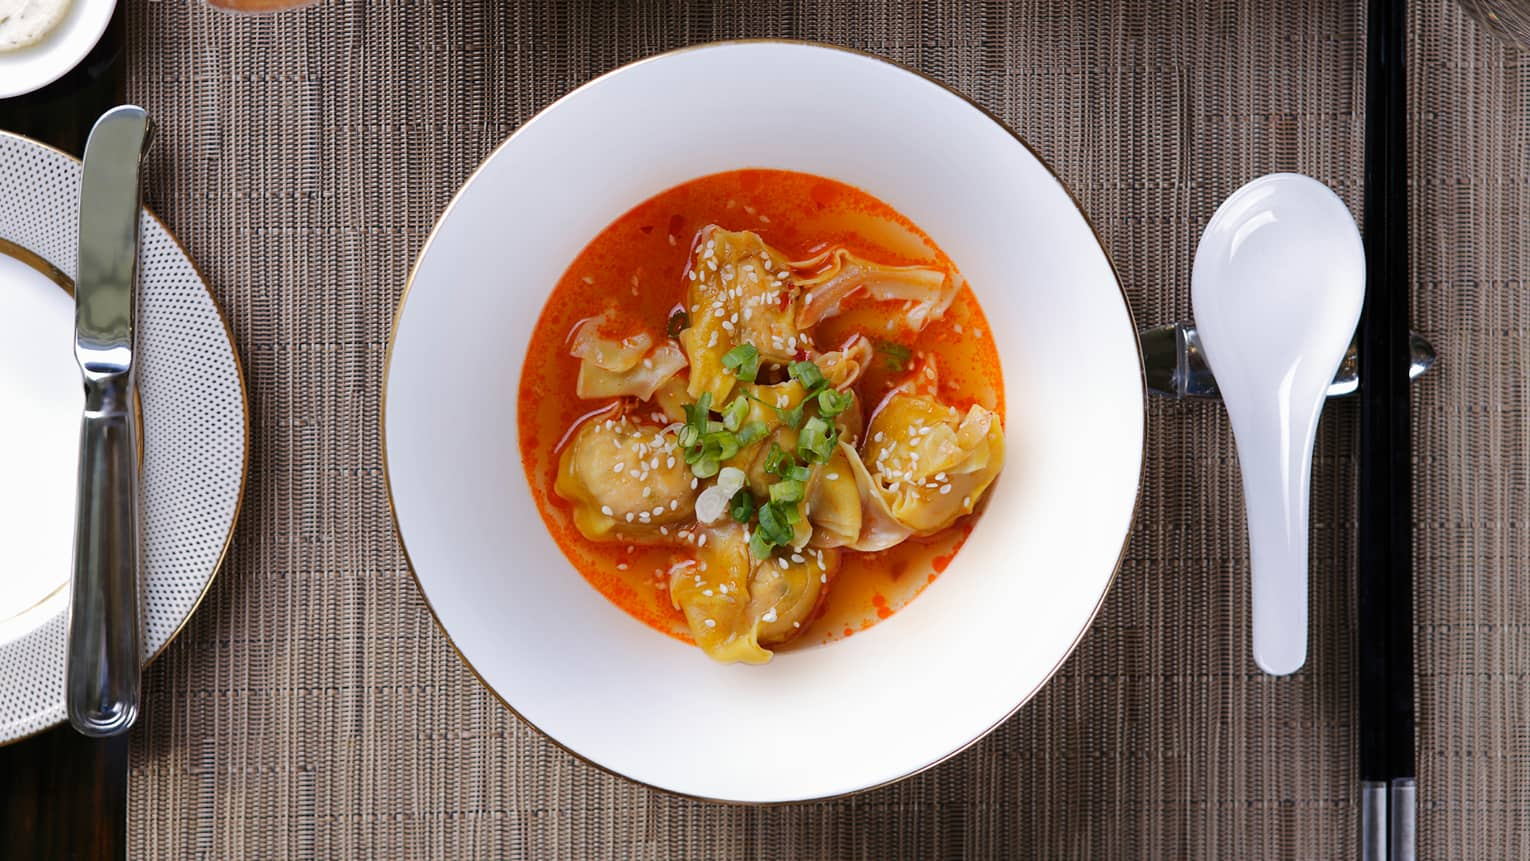 In-room dining white bowl with dumplings in red sauce, sprinkled with white sesame seeds, green onions